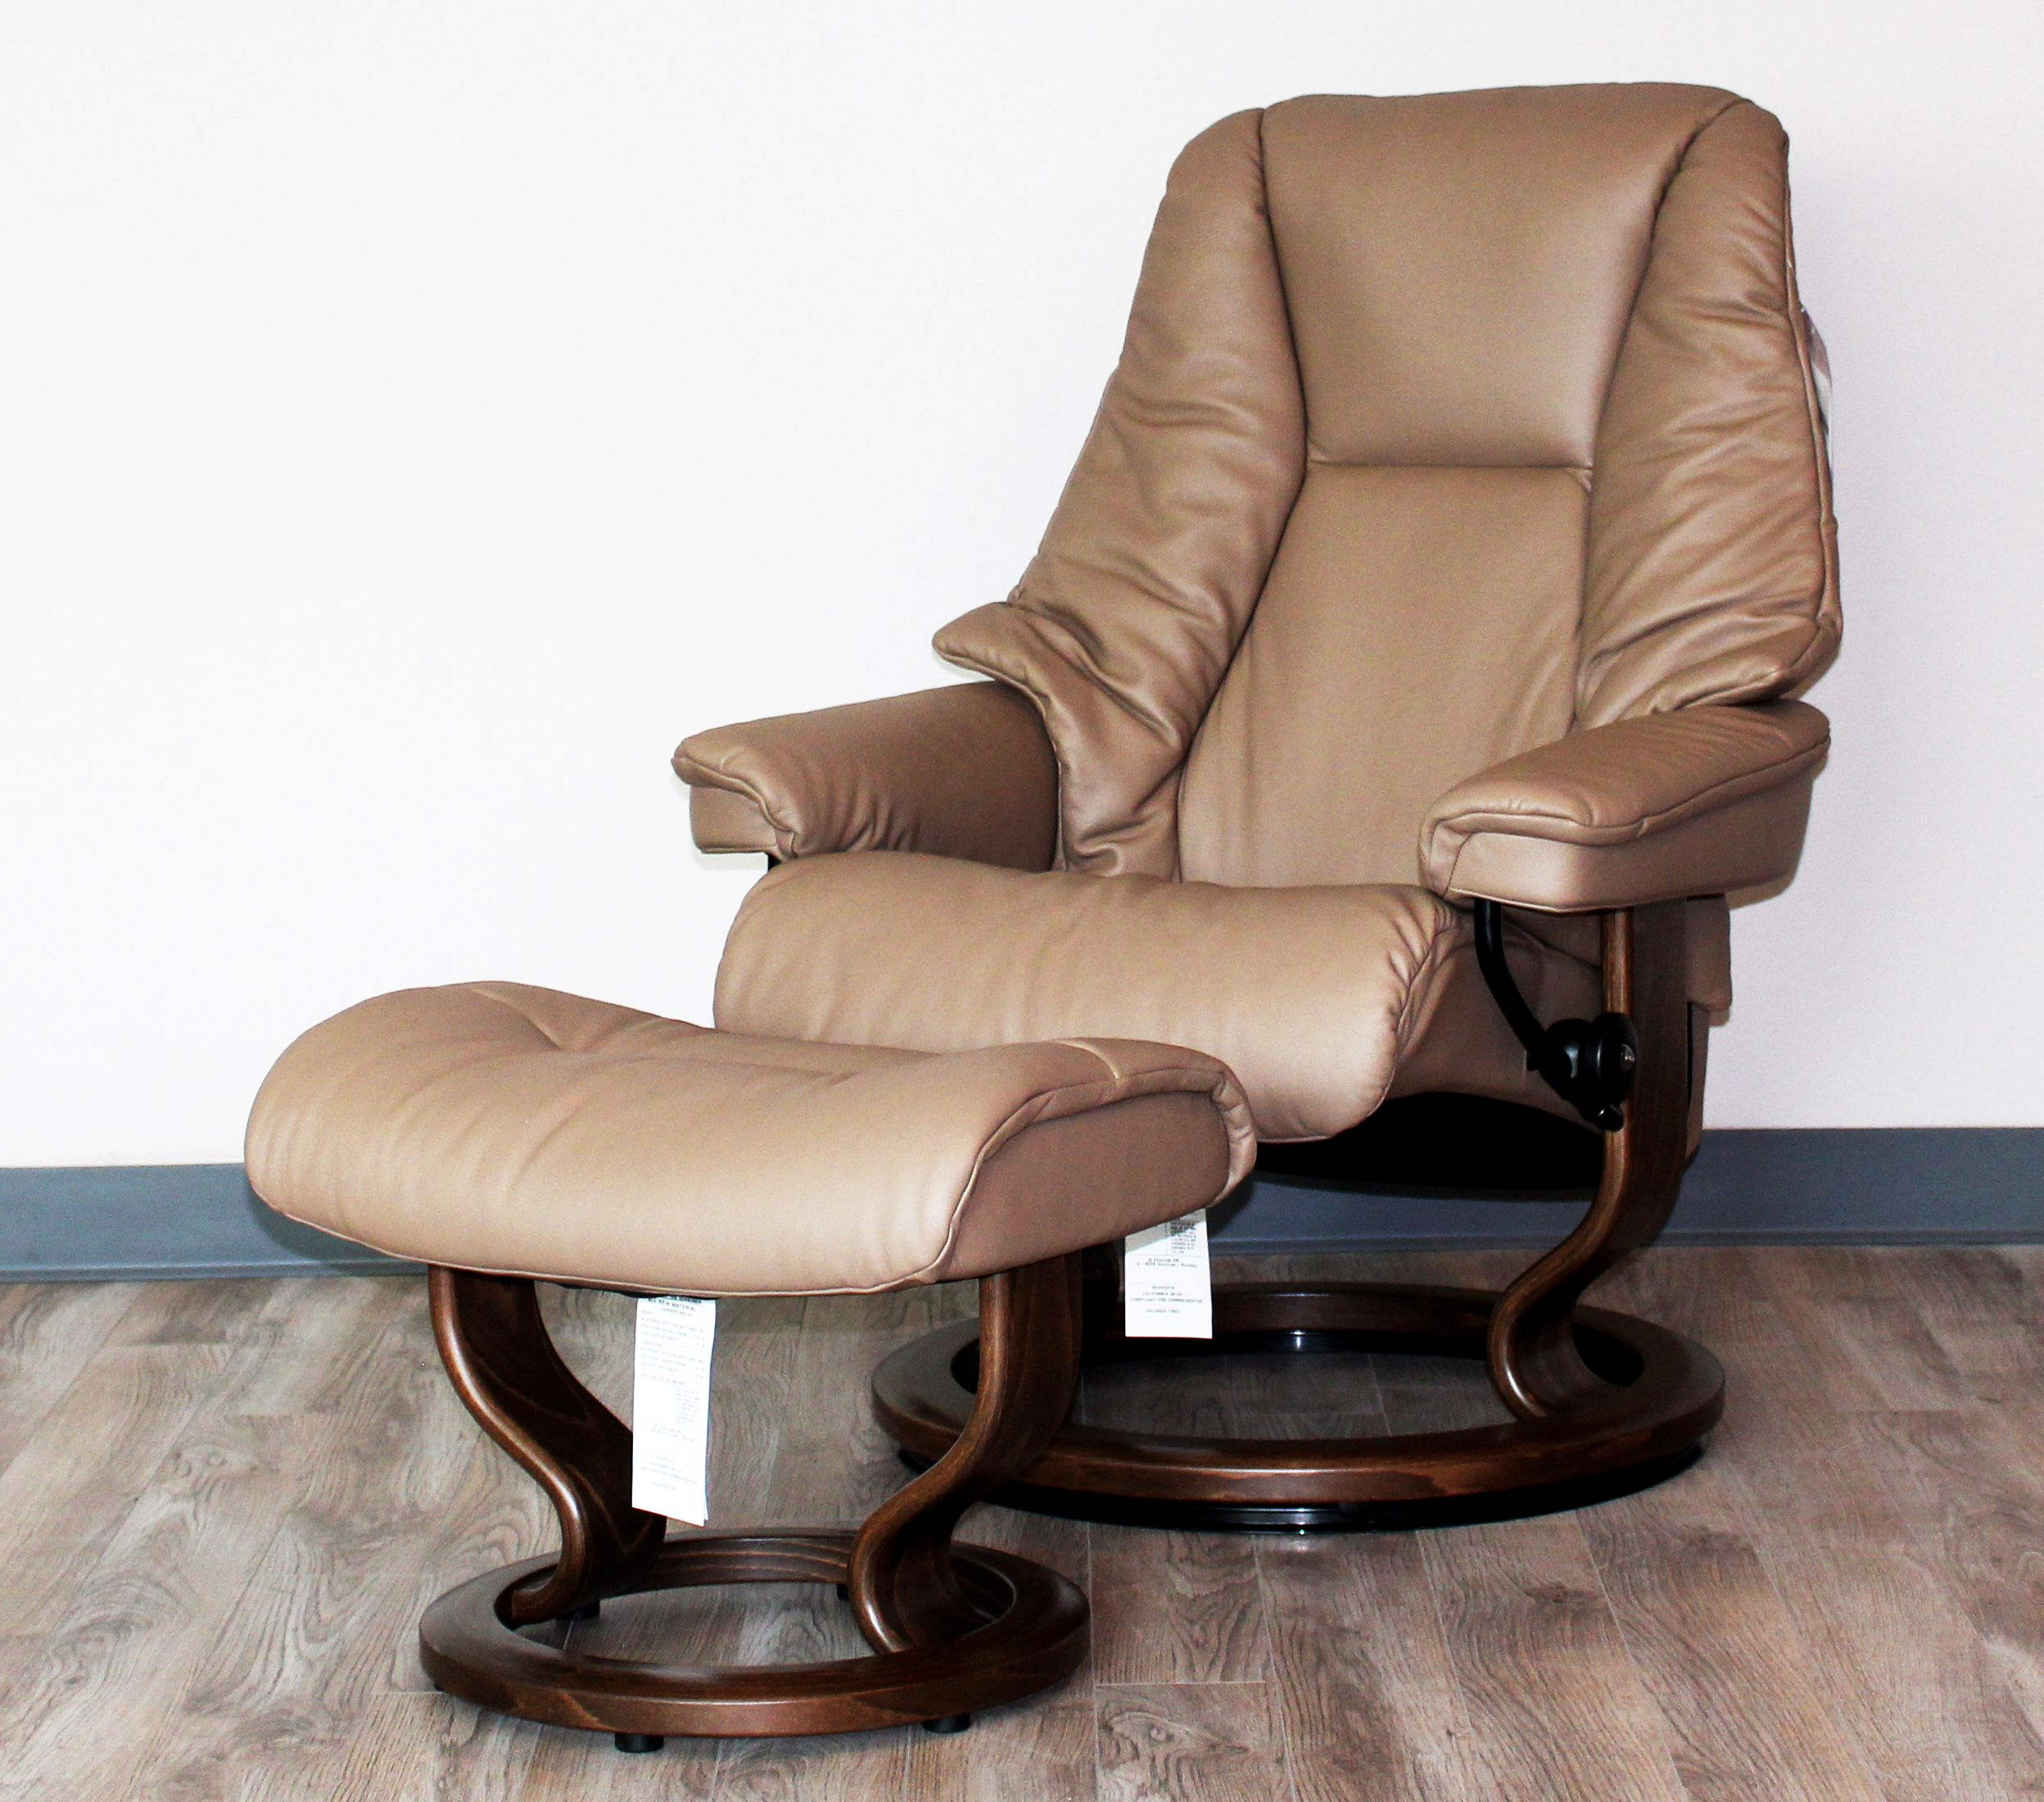 recliner chair with ottoman manufacturers wood folding church chairs ekornes stressless live lounger and